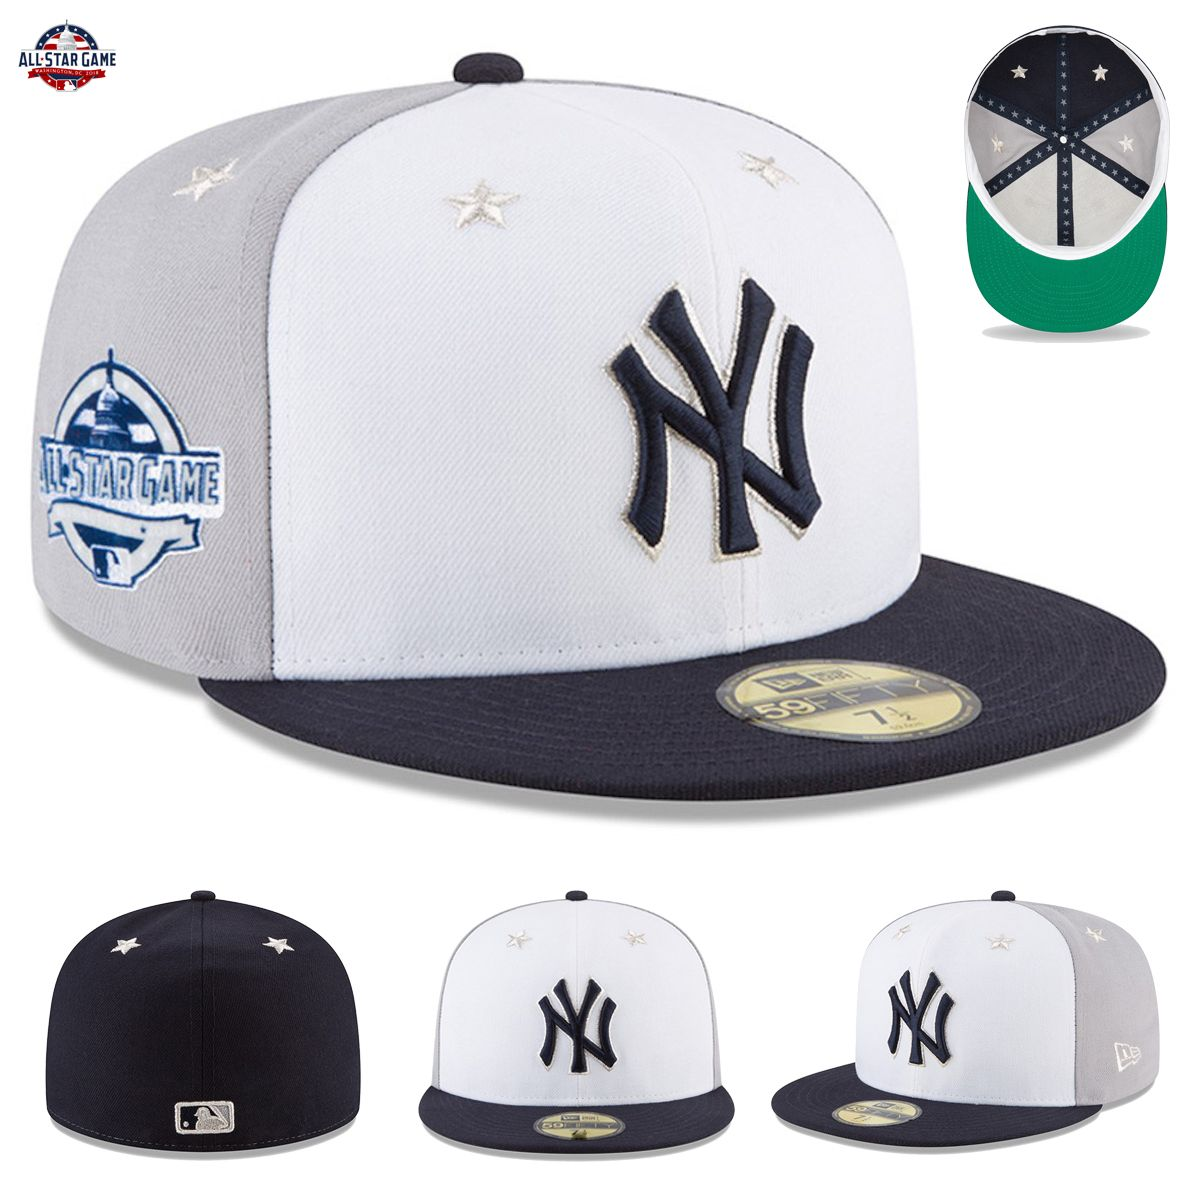 20fbb692873 New York Yankees New Era 2018 MLB All-Star Game Hat Cap On-Field 59FIFTY  Fitted. Each year you look forward to MLB All-Star Week and seeing all your  ...